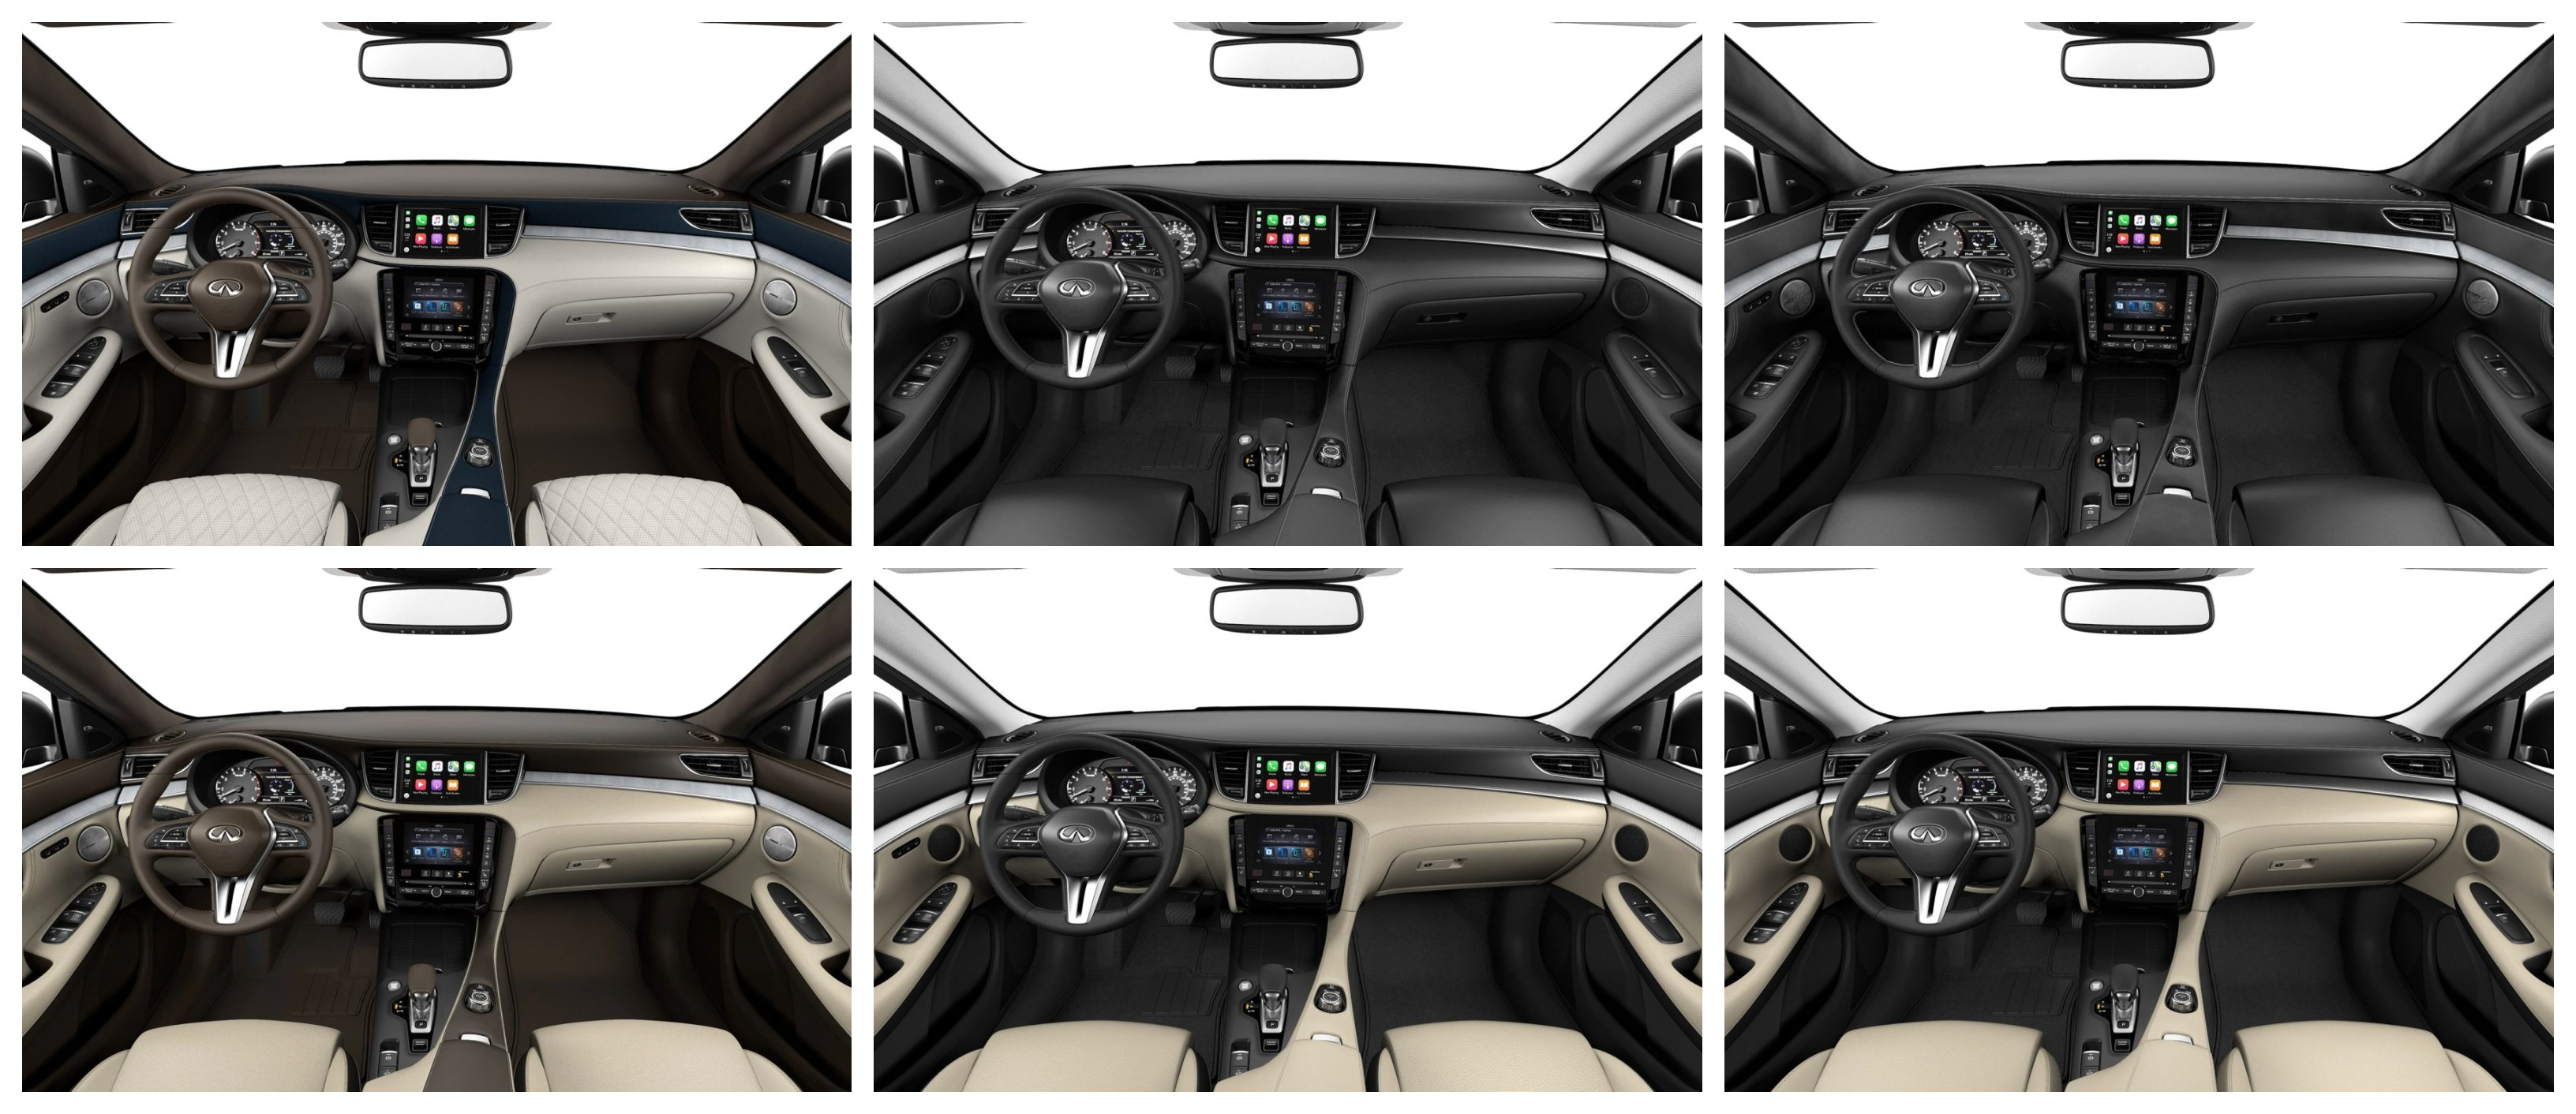 2020 INFINITI QX50 Interior Color Options Collage